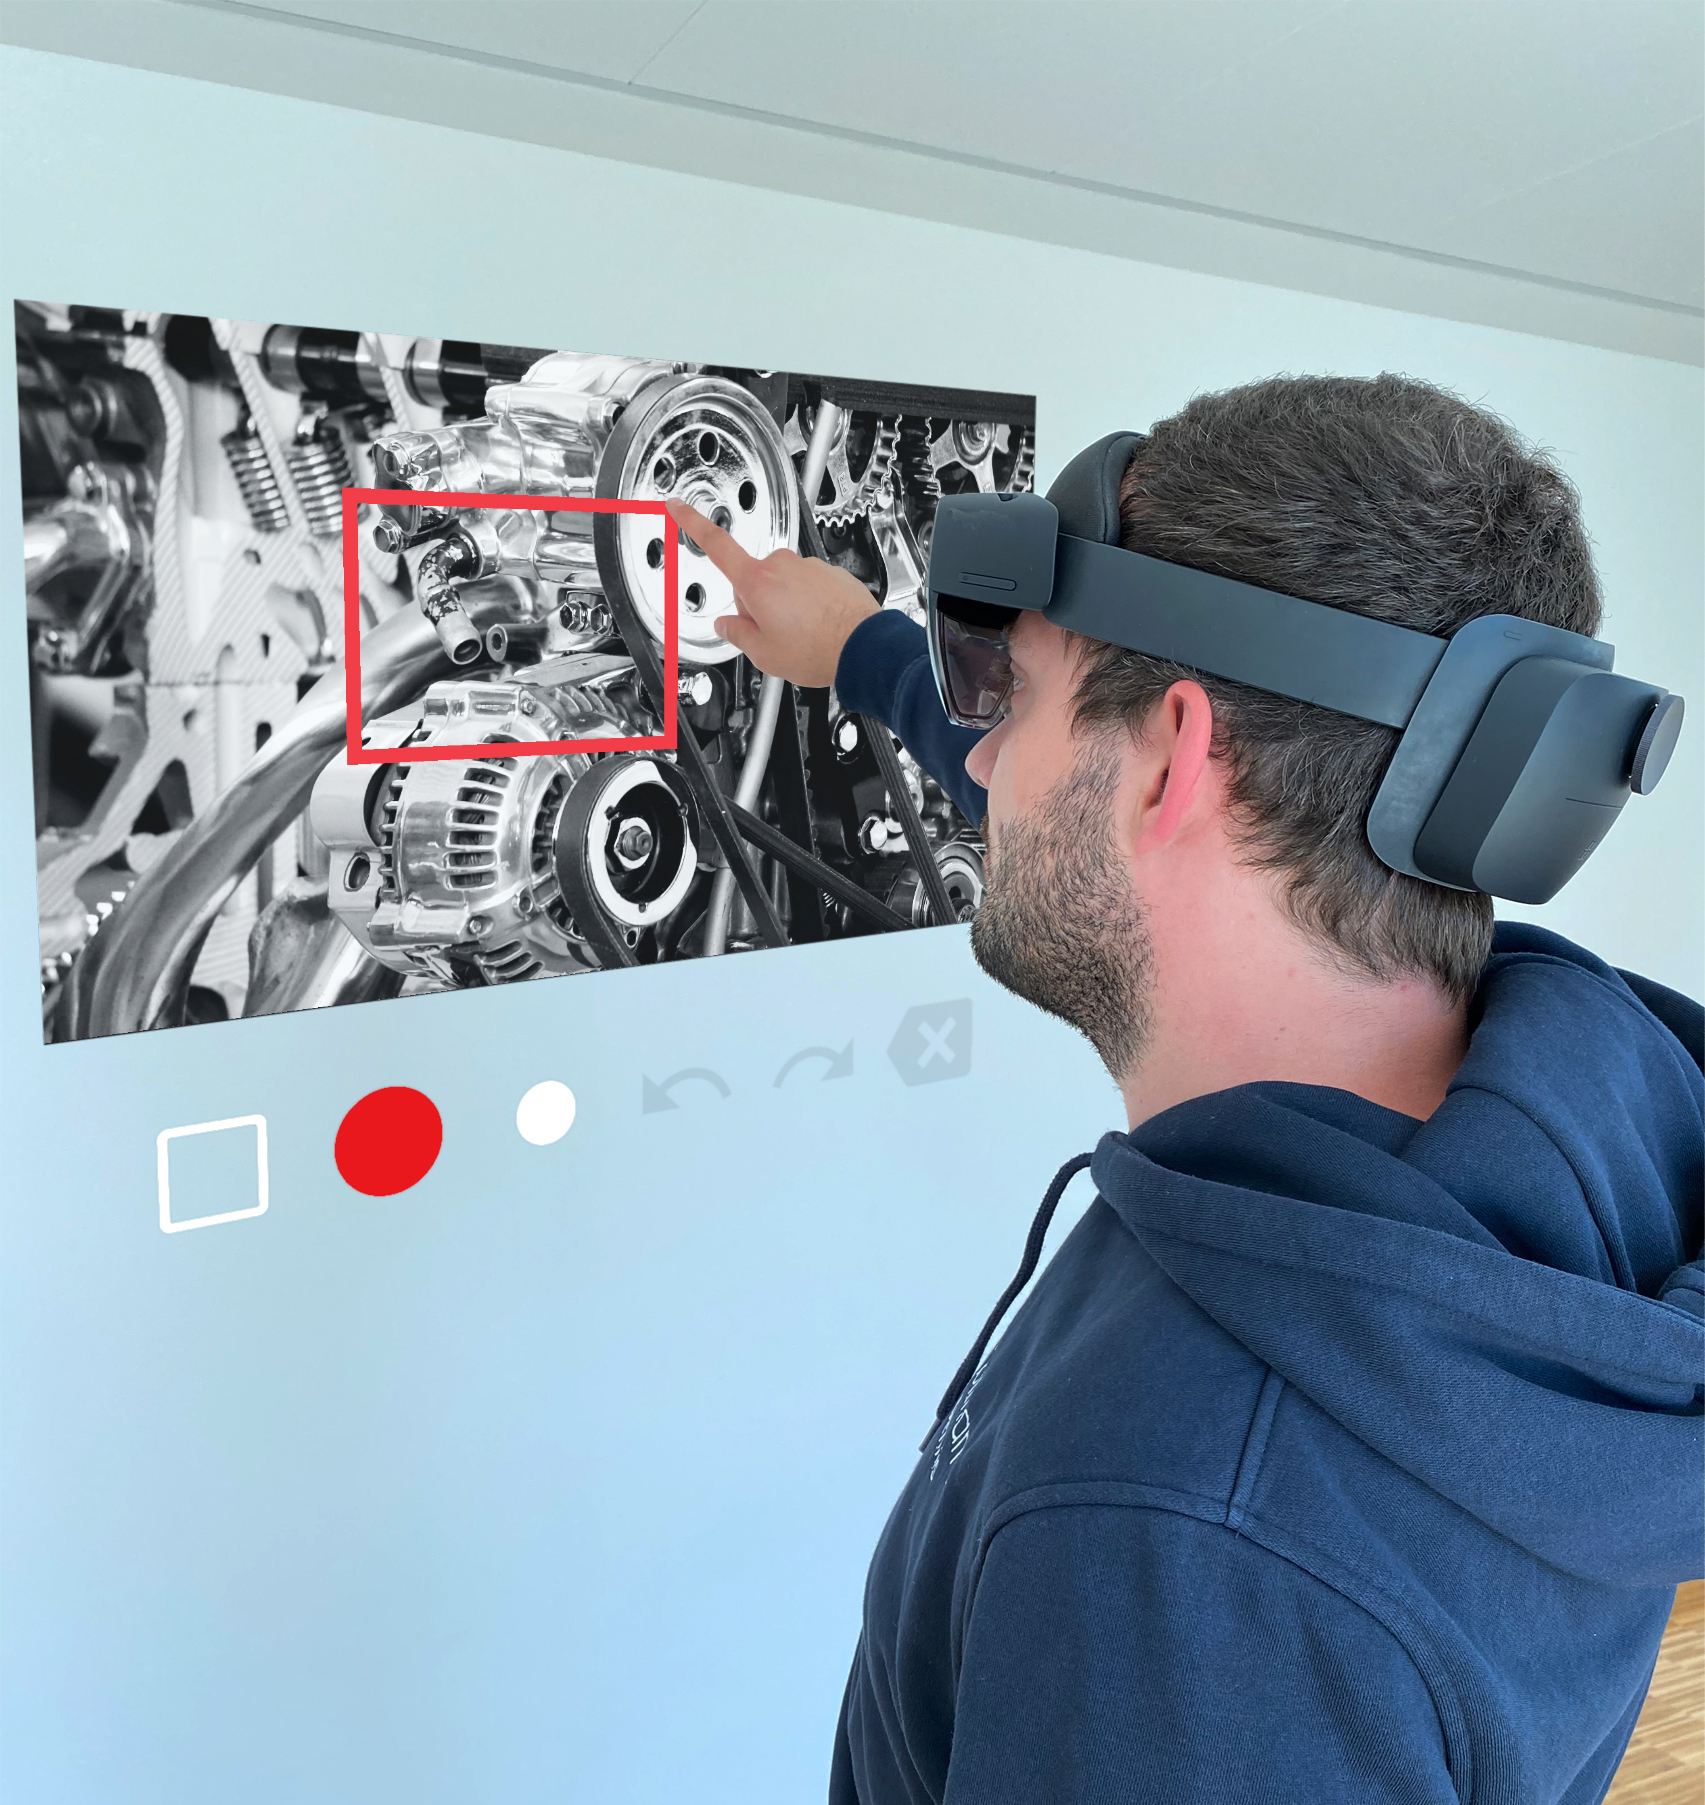 Microsoft HoloLens 2 Augmented Reality Instandhaltung